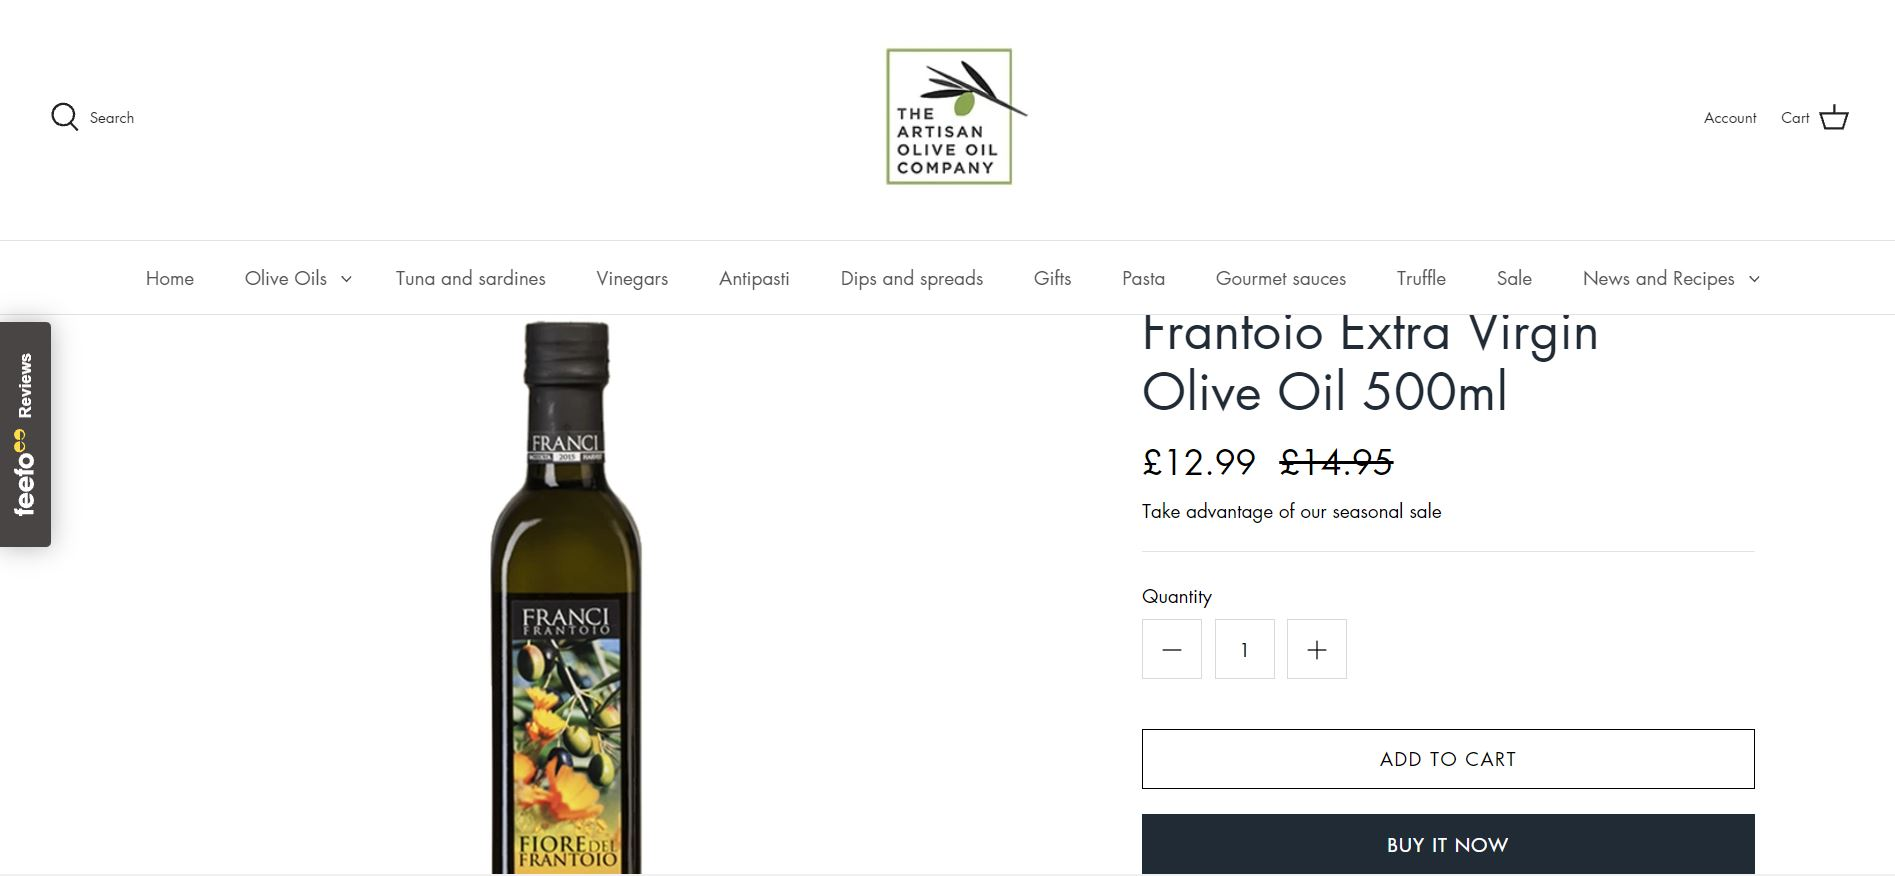 The Artisan olive oil company